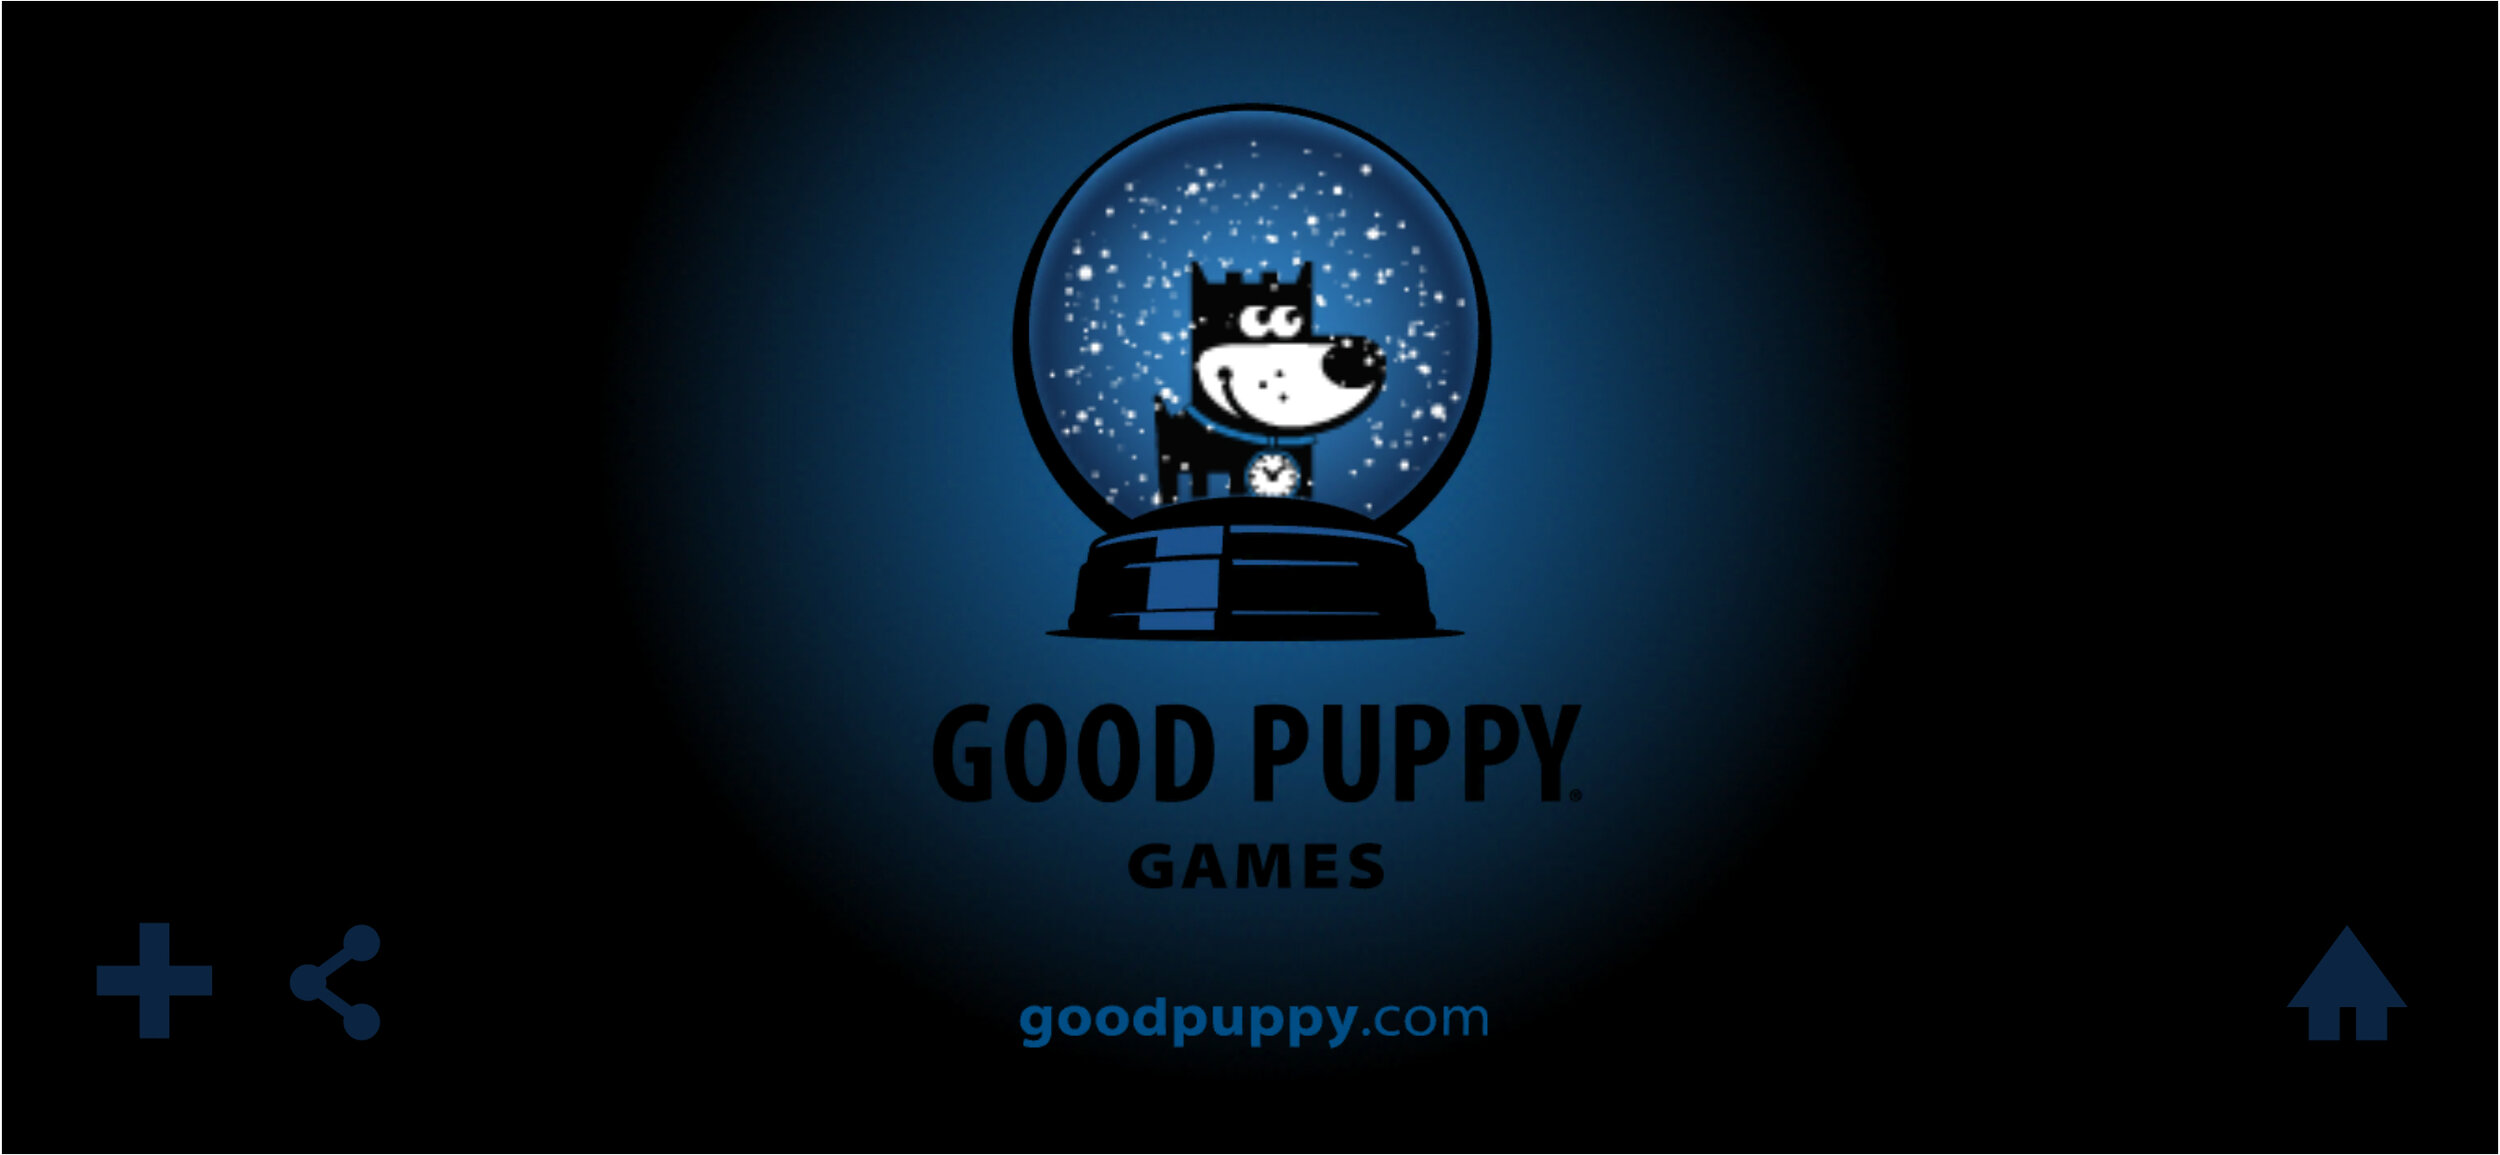 9-GOOD-PUPPY-Apps-Games-Children.jpg